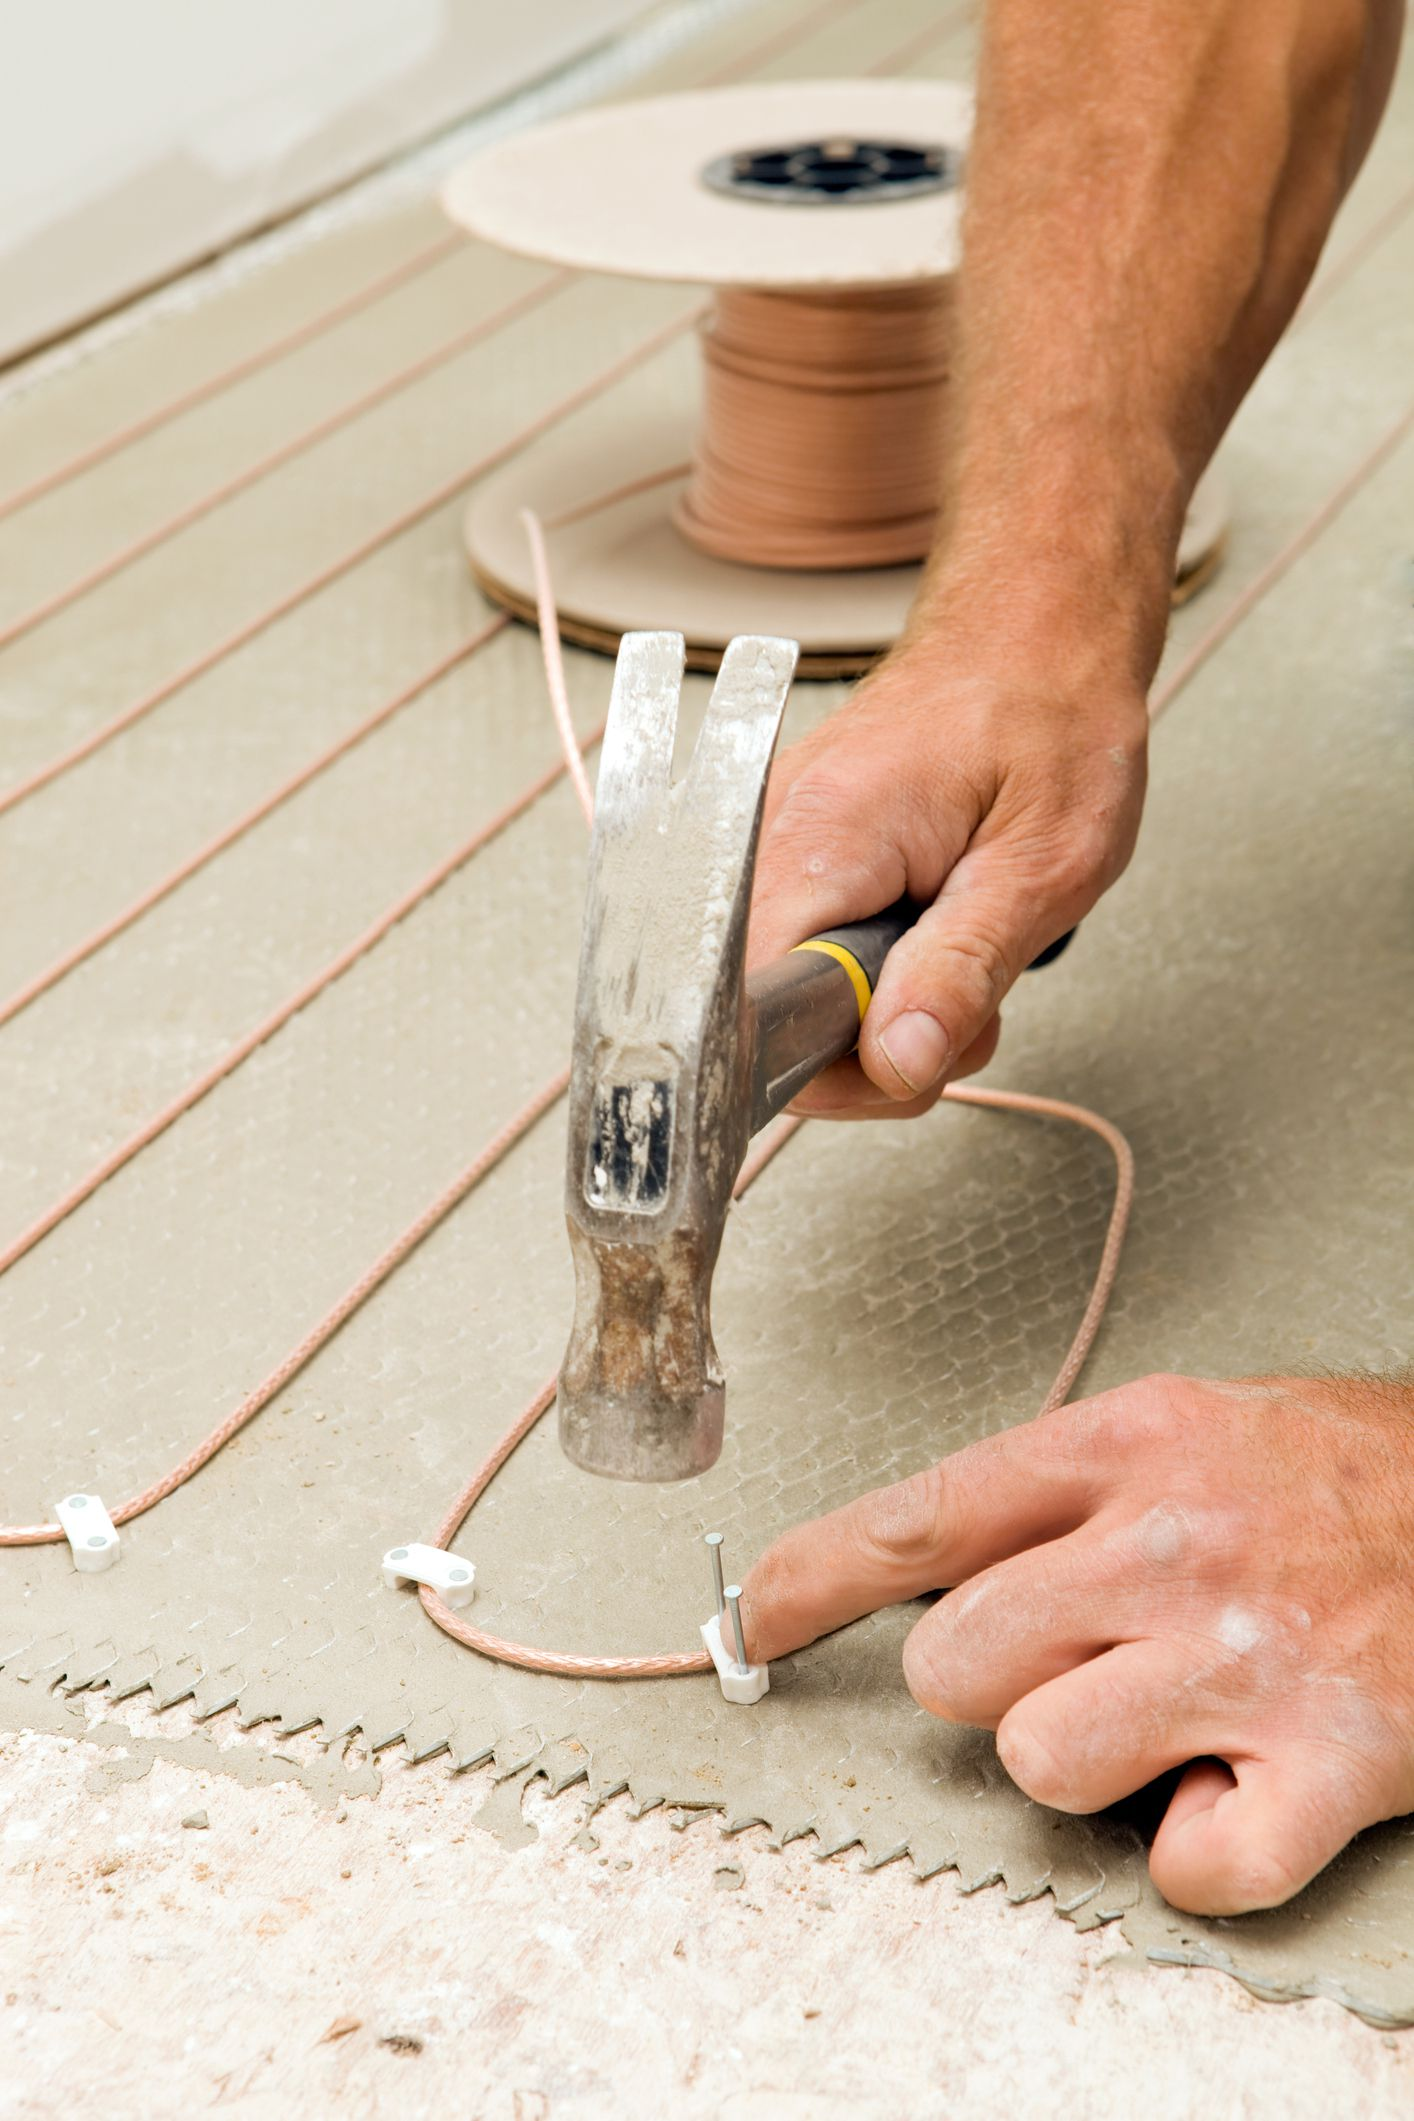 Subfloor Heating Systems With Embedded Radiant Heating